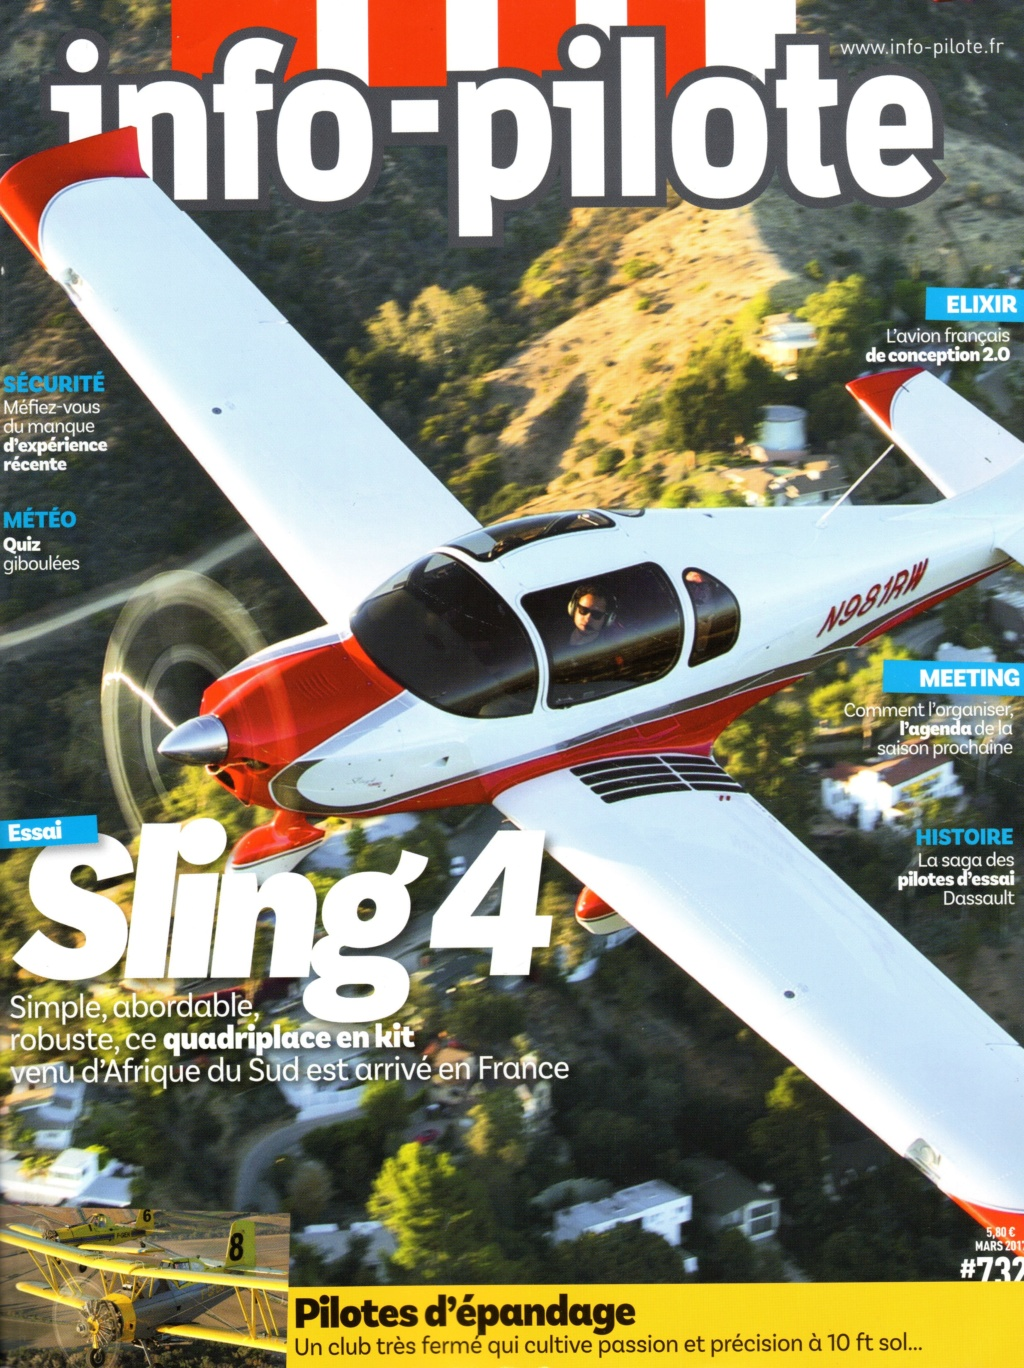 Sling 4 Article Info Pilote 17030423